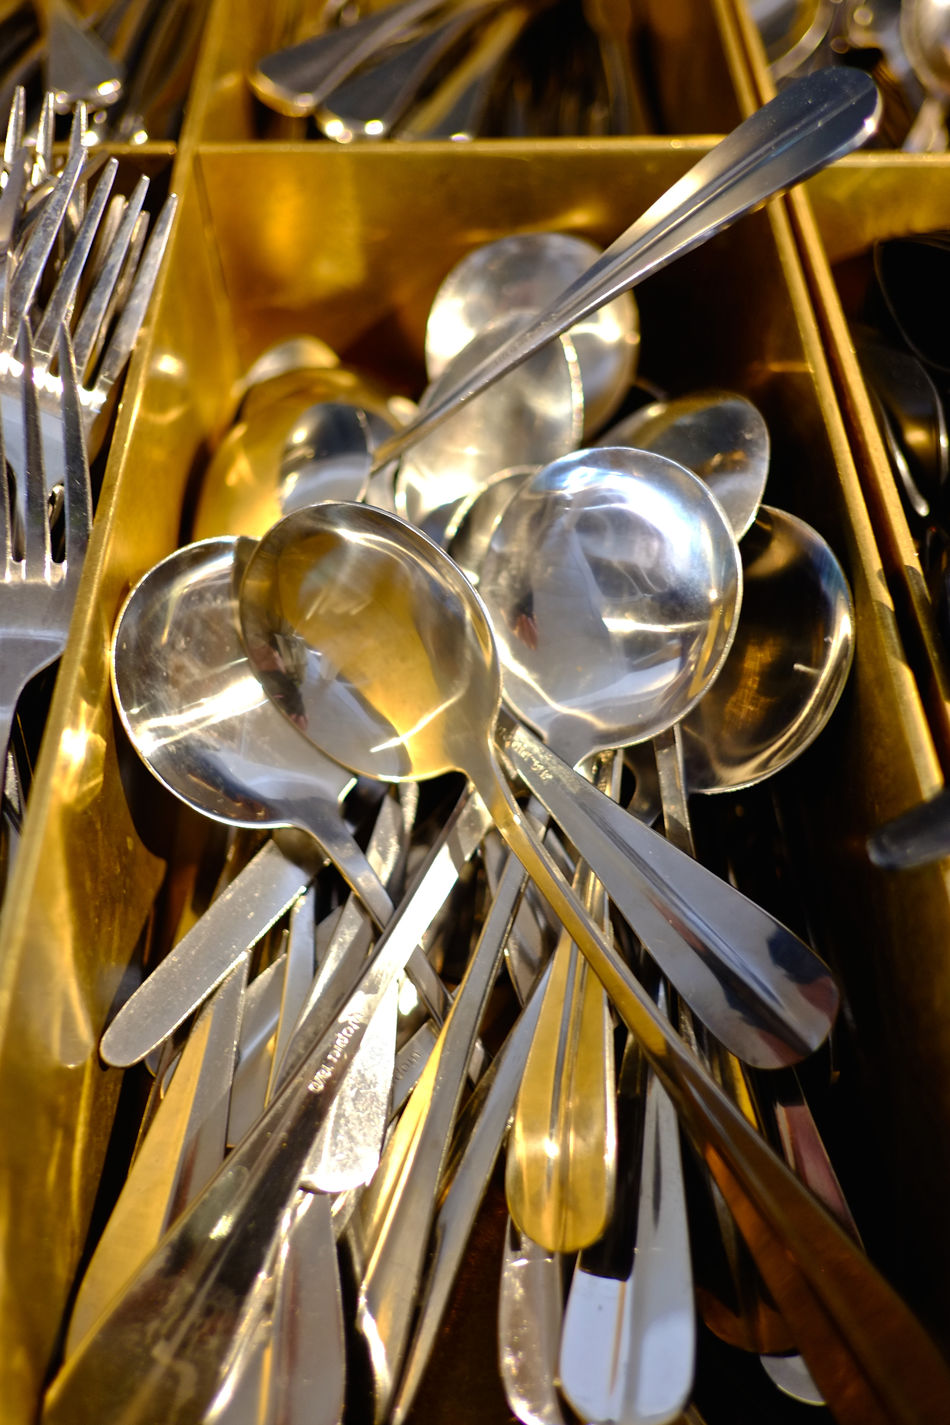 Design elements at modern-style bar/cafe/restaurant Close-up Cutlery Day Fork Gold Colored Indoors  Metal Music No People Shiny Spoon